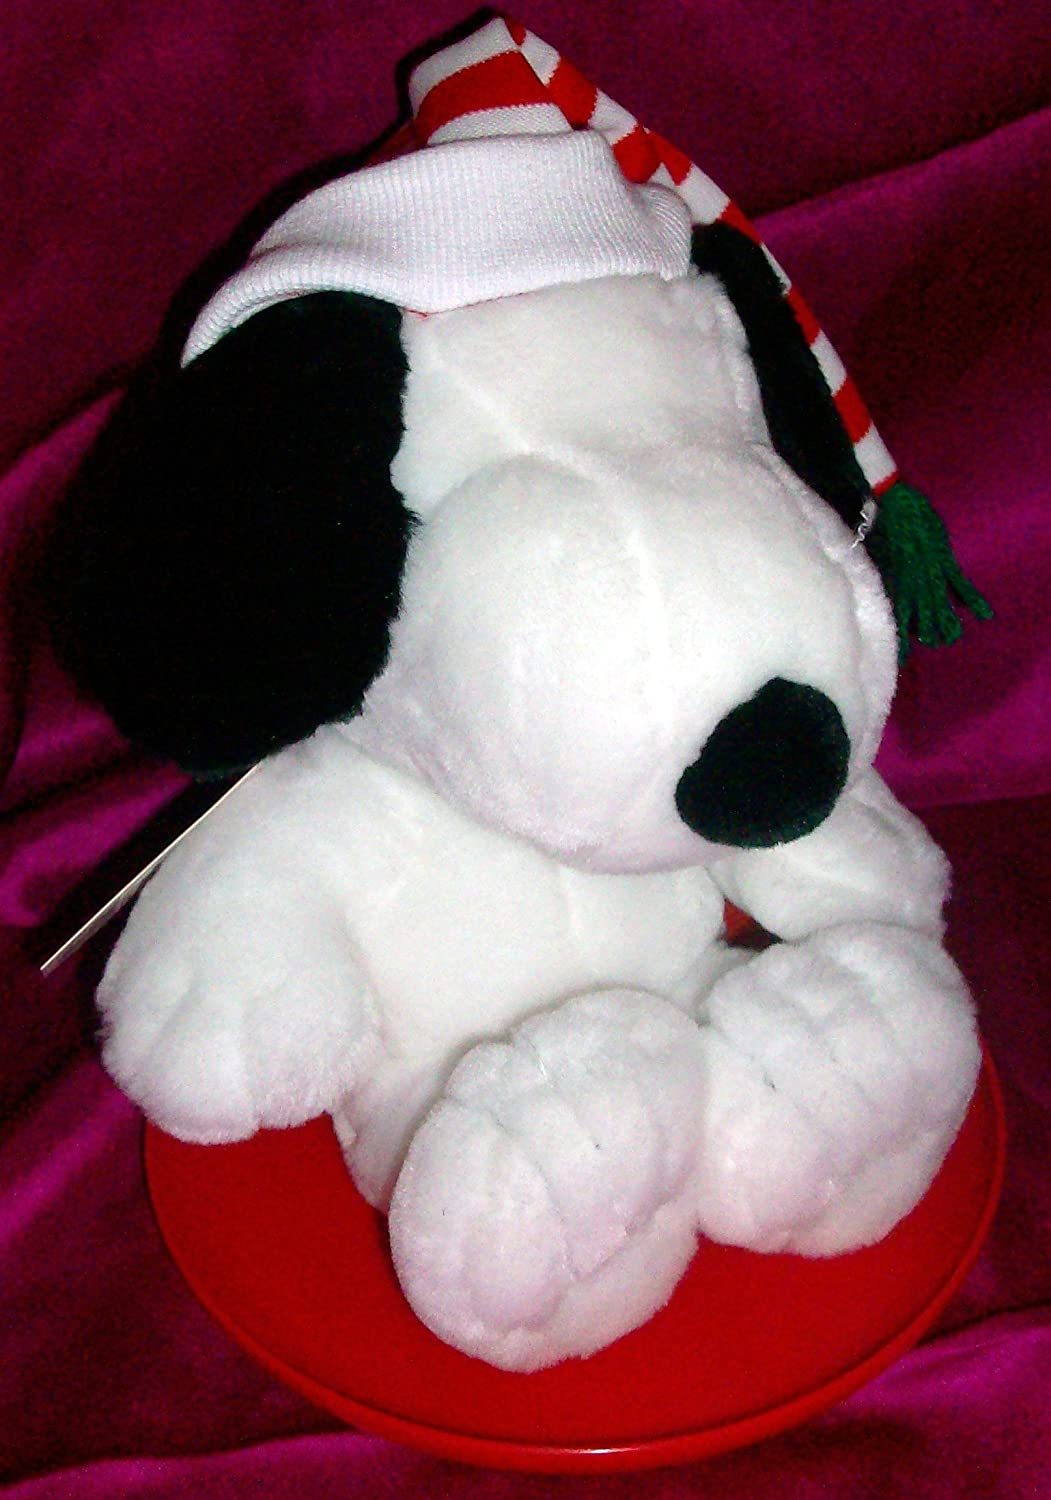 12  Plush Snoopy Doll Toy on rot Disc Doll Toy by Hallmark